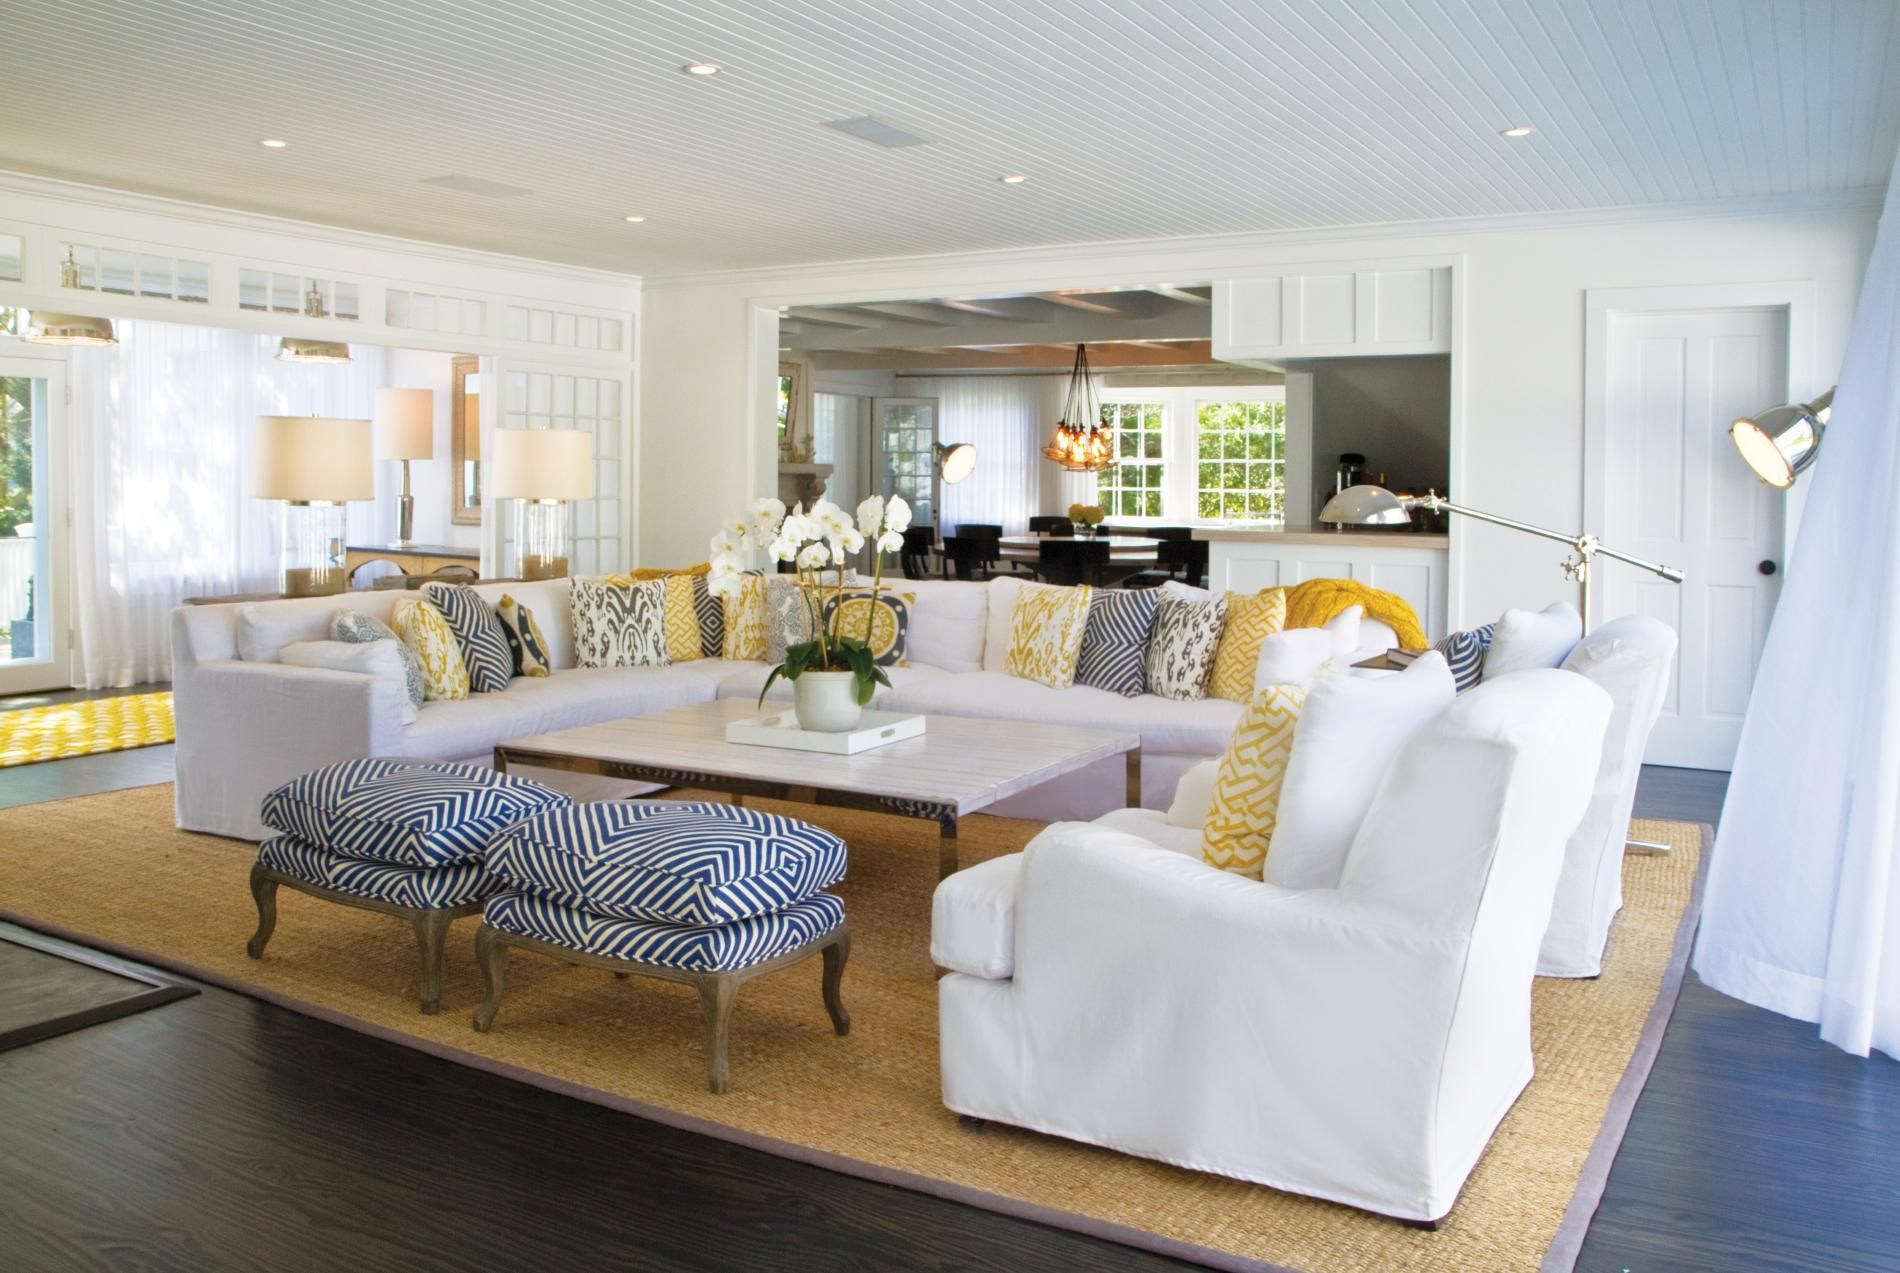 29 living room design ideas with photos - Living Room East Hampton